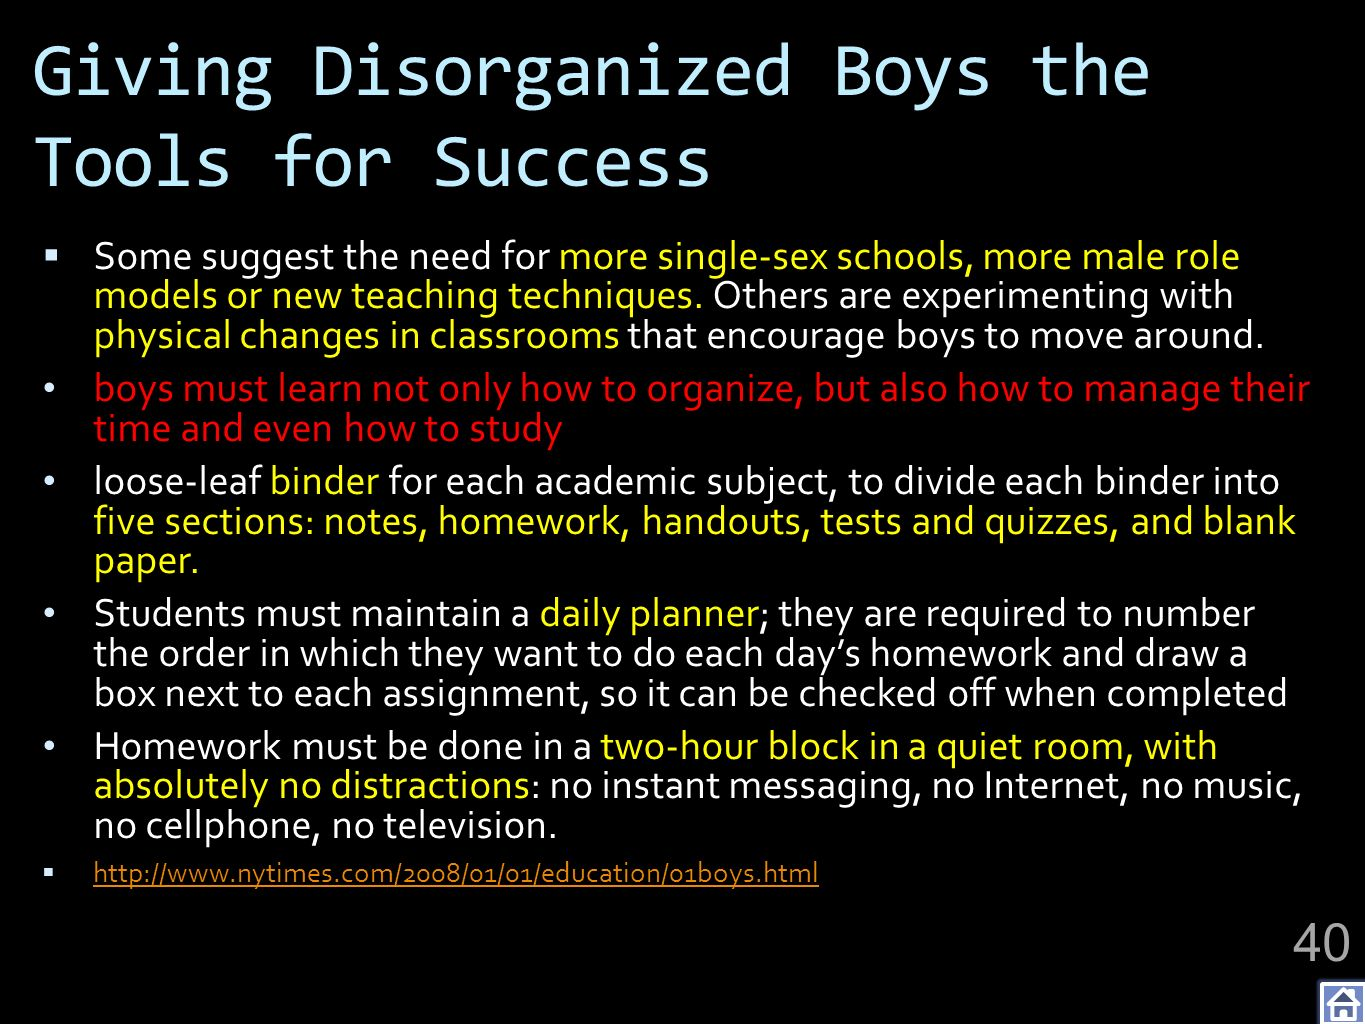 Giving Disorganized Boys the Tools for Success